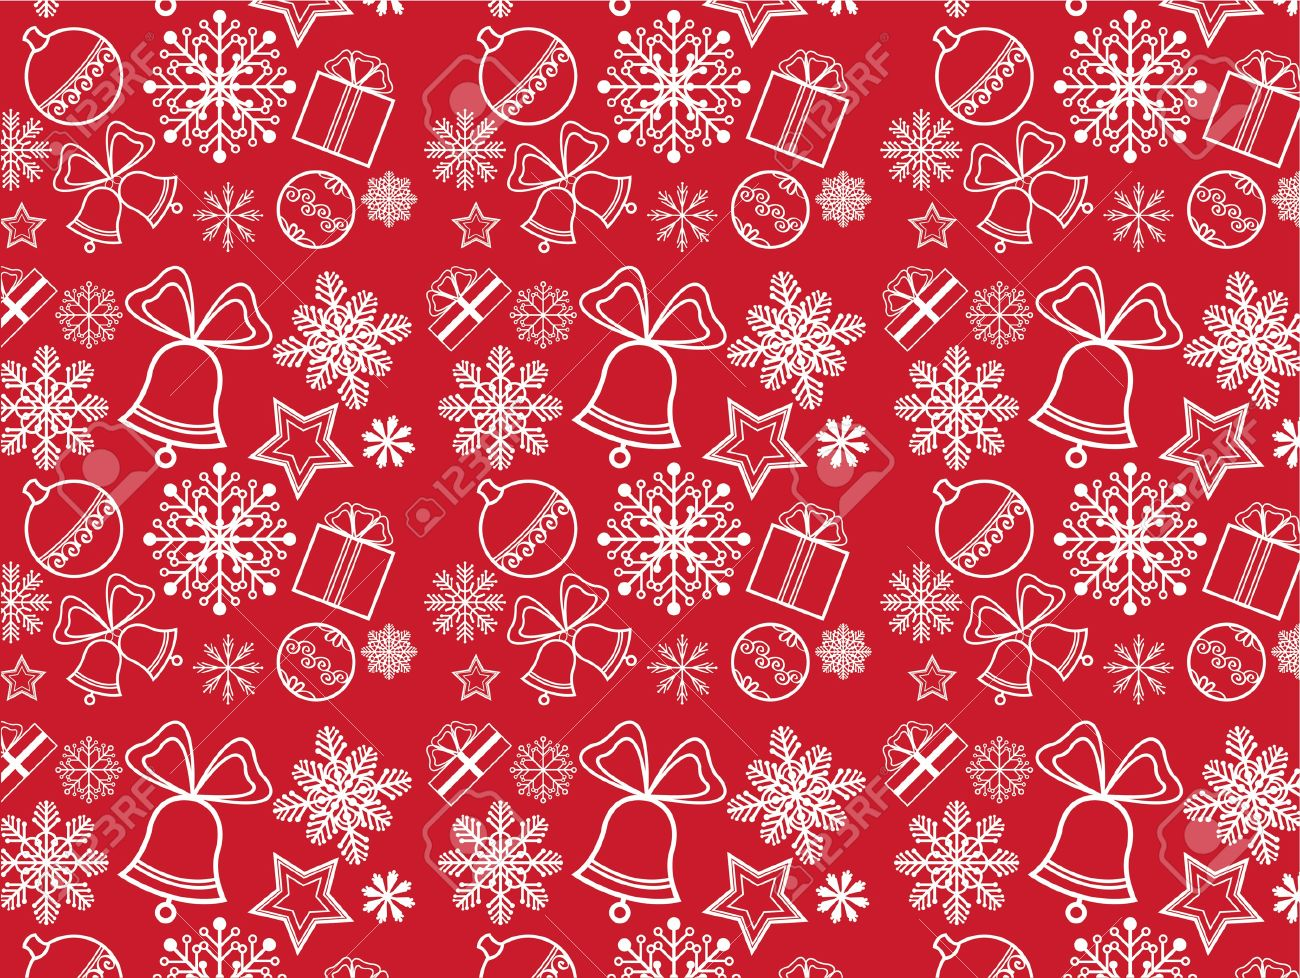 Red Christmas Wallpaper With New Year Theme Royalty Free Cliparts